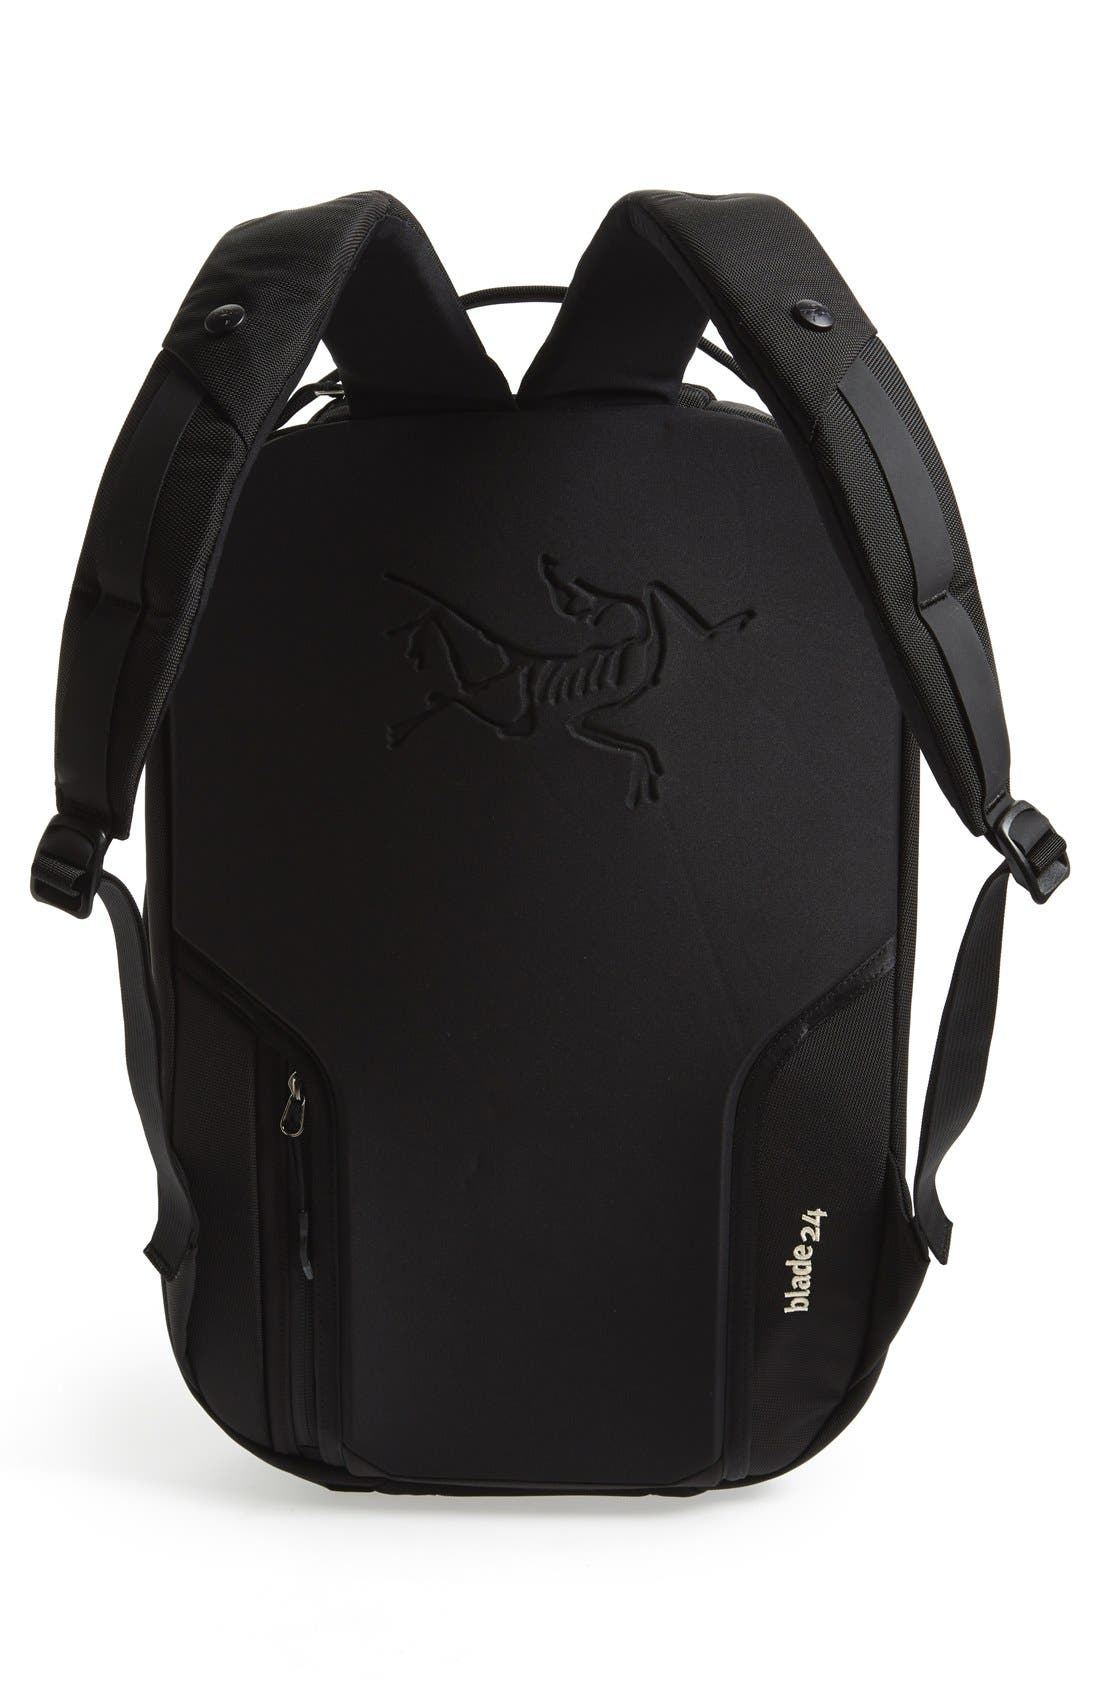 ARC'TERYX,                             'Blade' Backpack,                             Alternate thumbnail 2, color,                             001